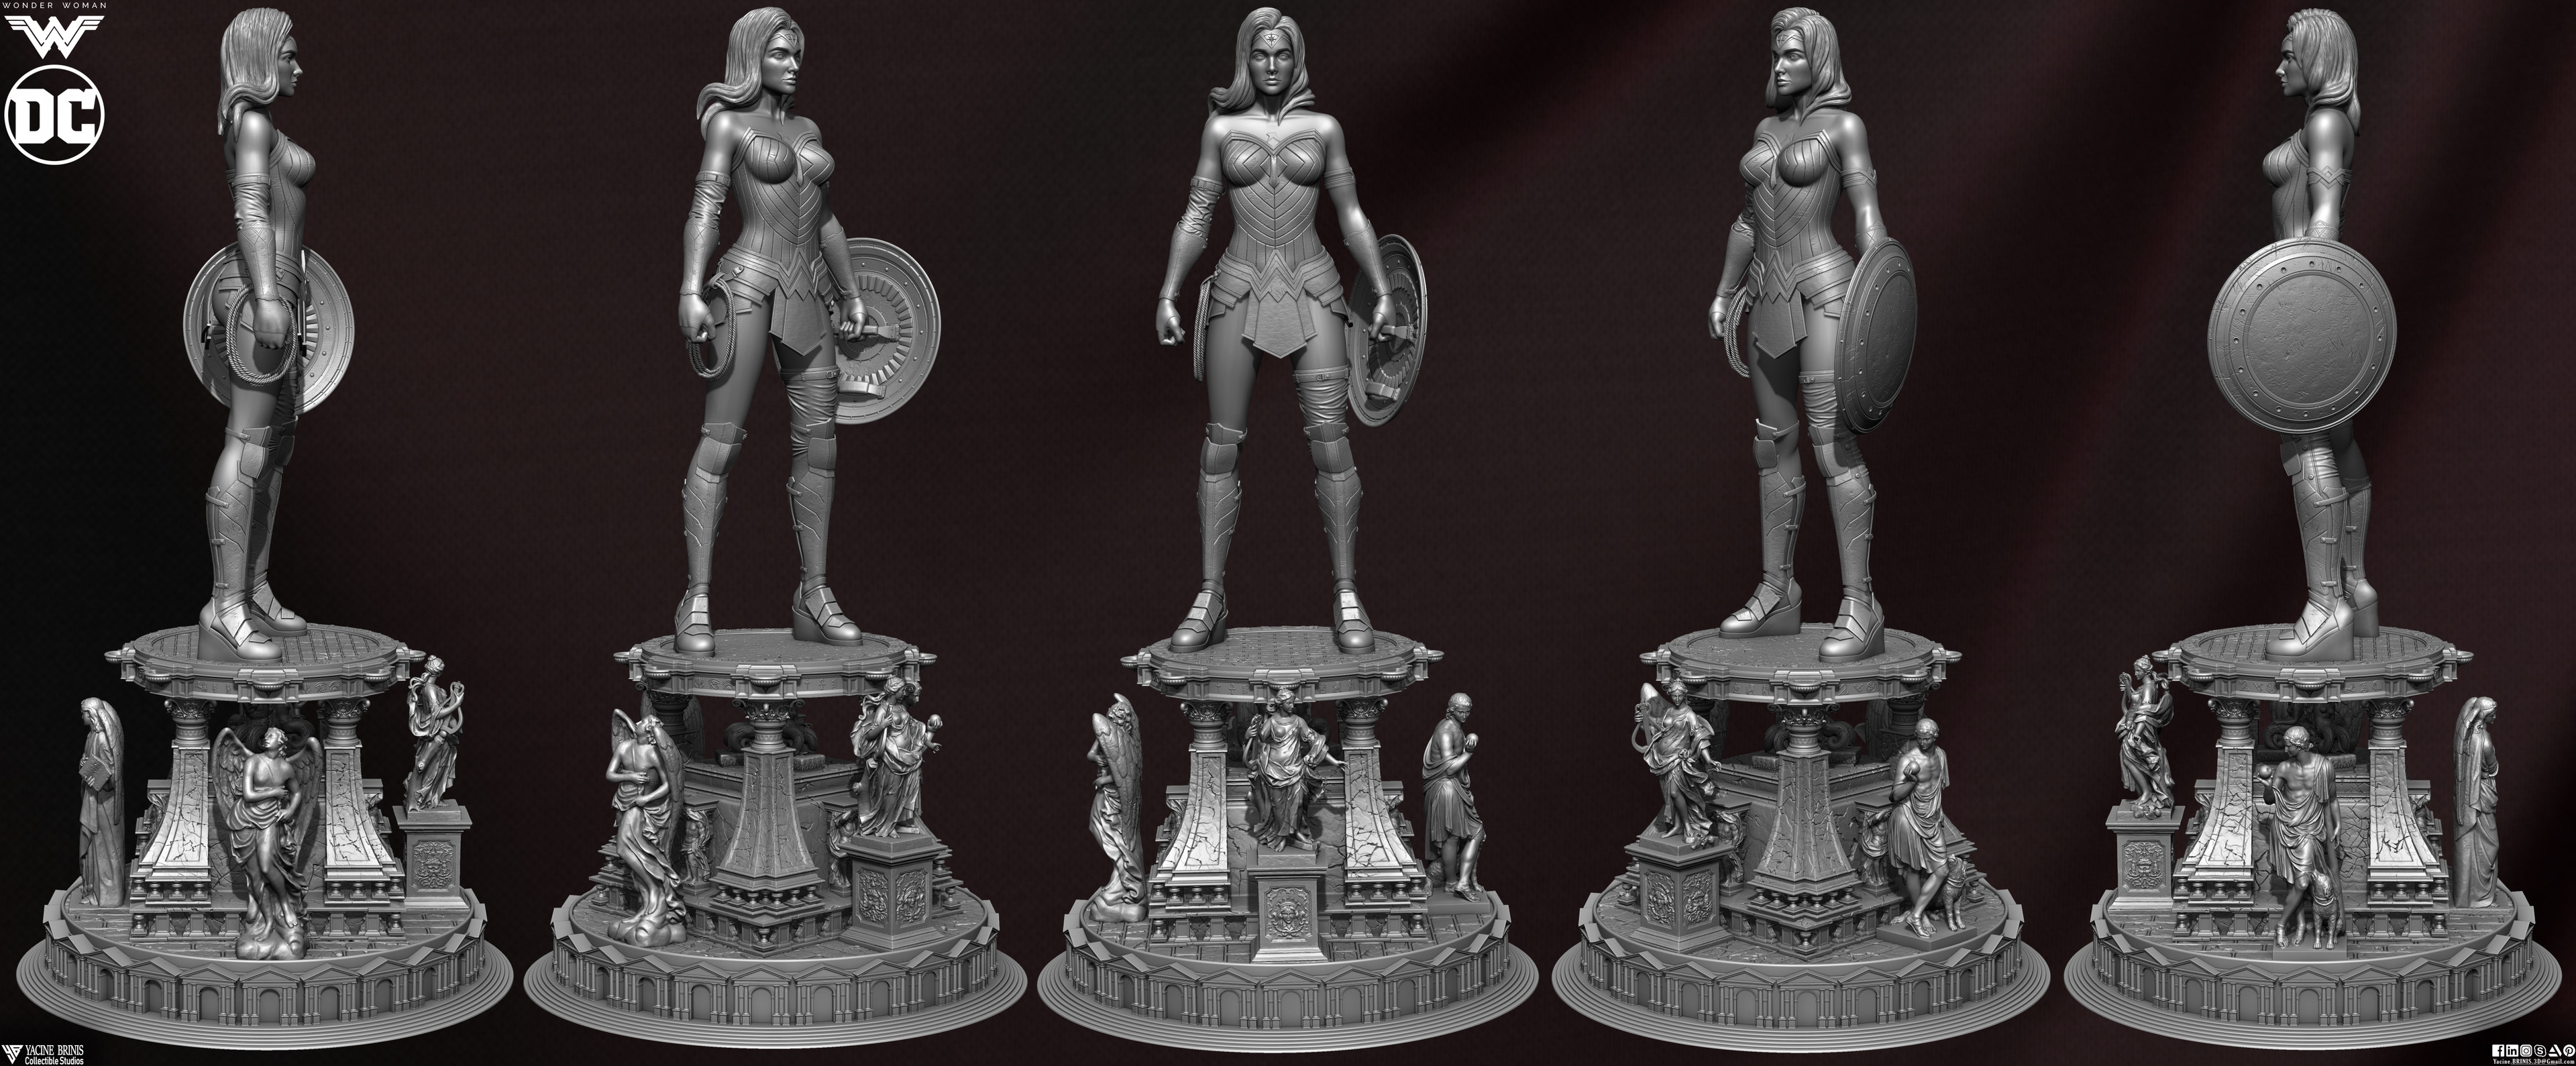 Wonder Woman ZBrush Version, Personal Project (Sculpted By Yacine BRINIS) Set 06